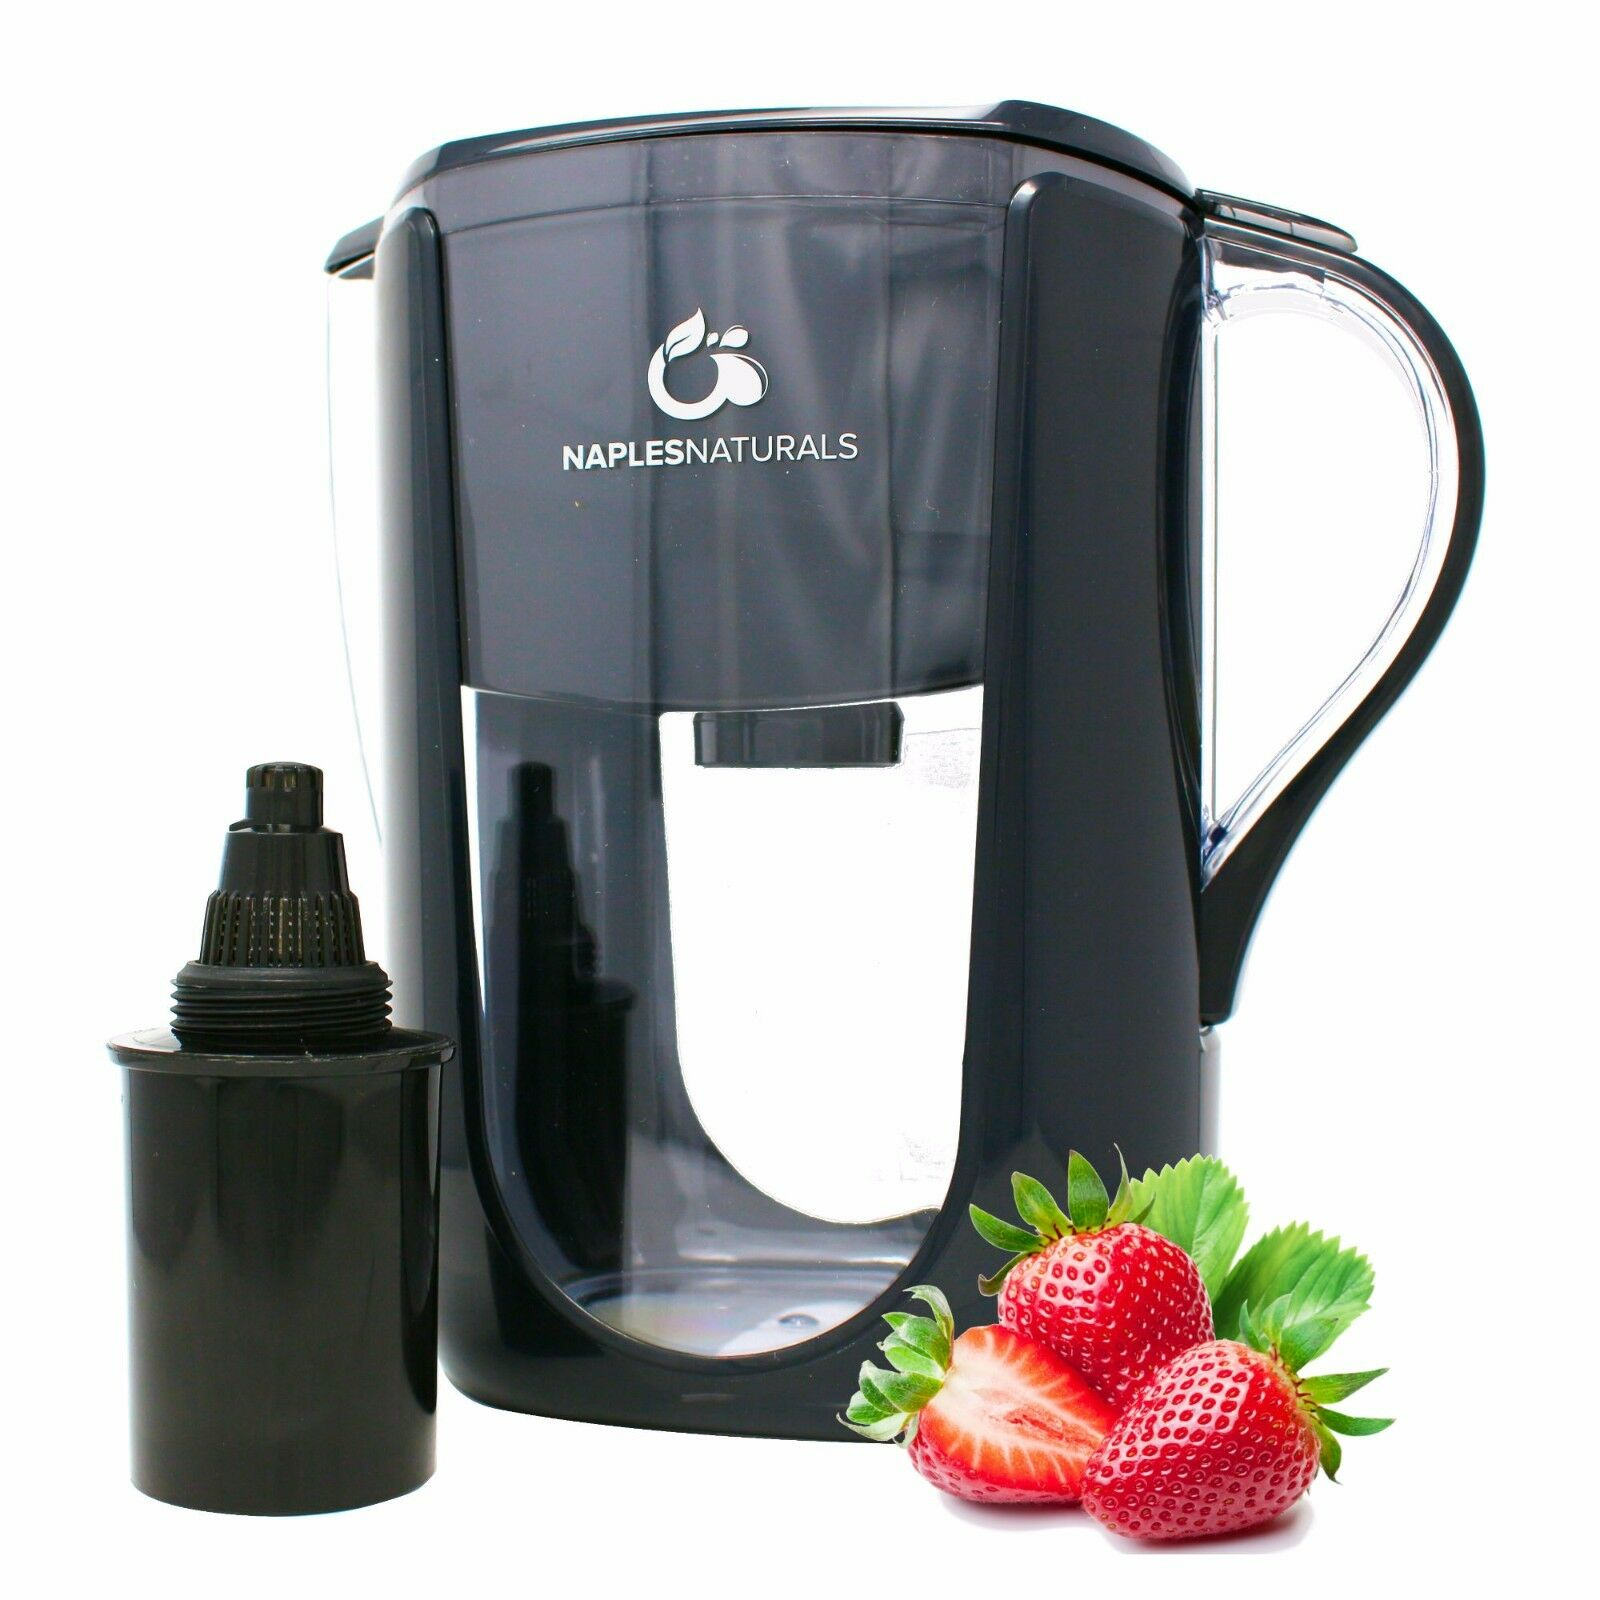 Alkaline Water Pitcher with Chlorine Filter, 10 Cups by Napl